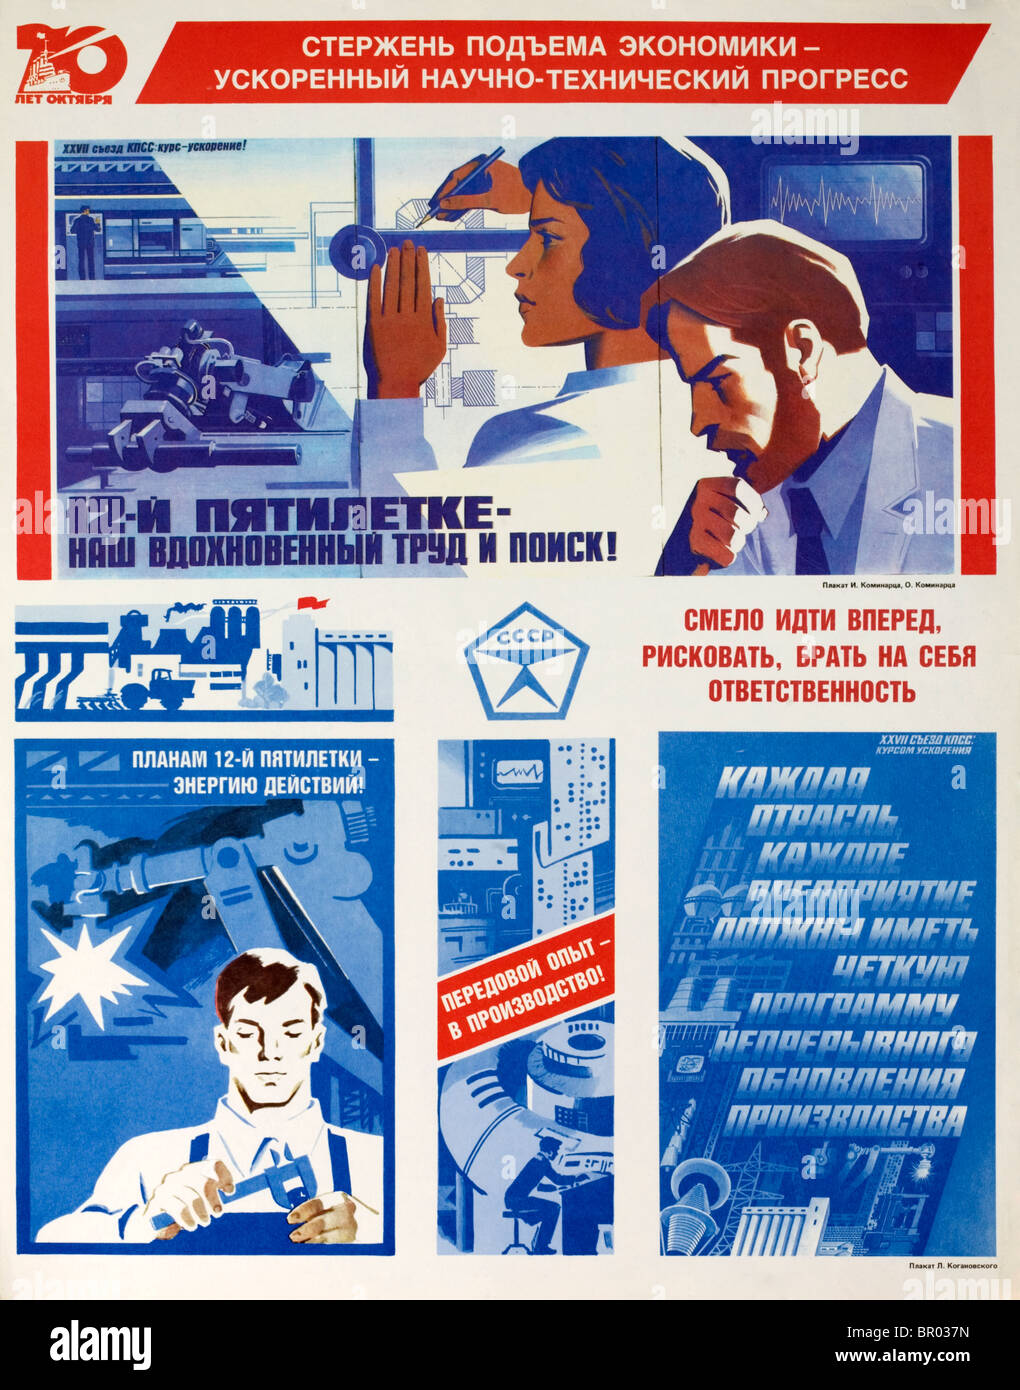 Xxxl Poster Poster Soviet Industry Stock Photos Poster Soviet Industry Stock